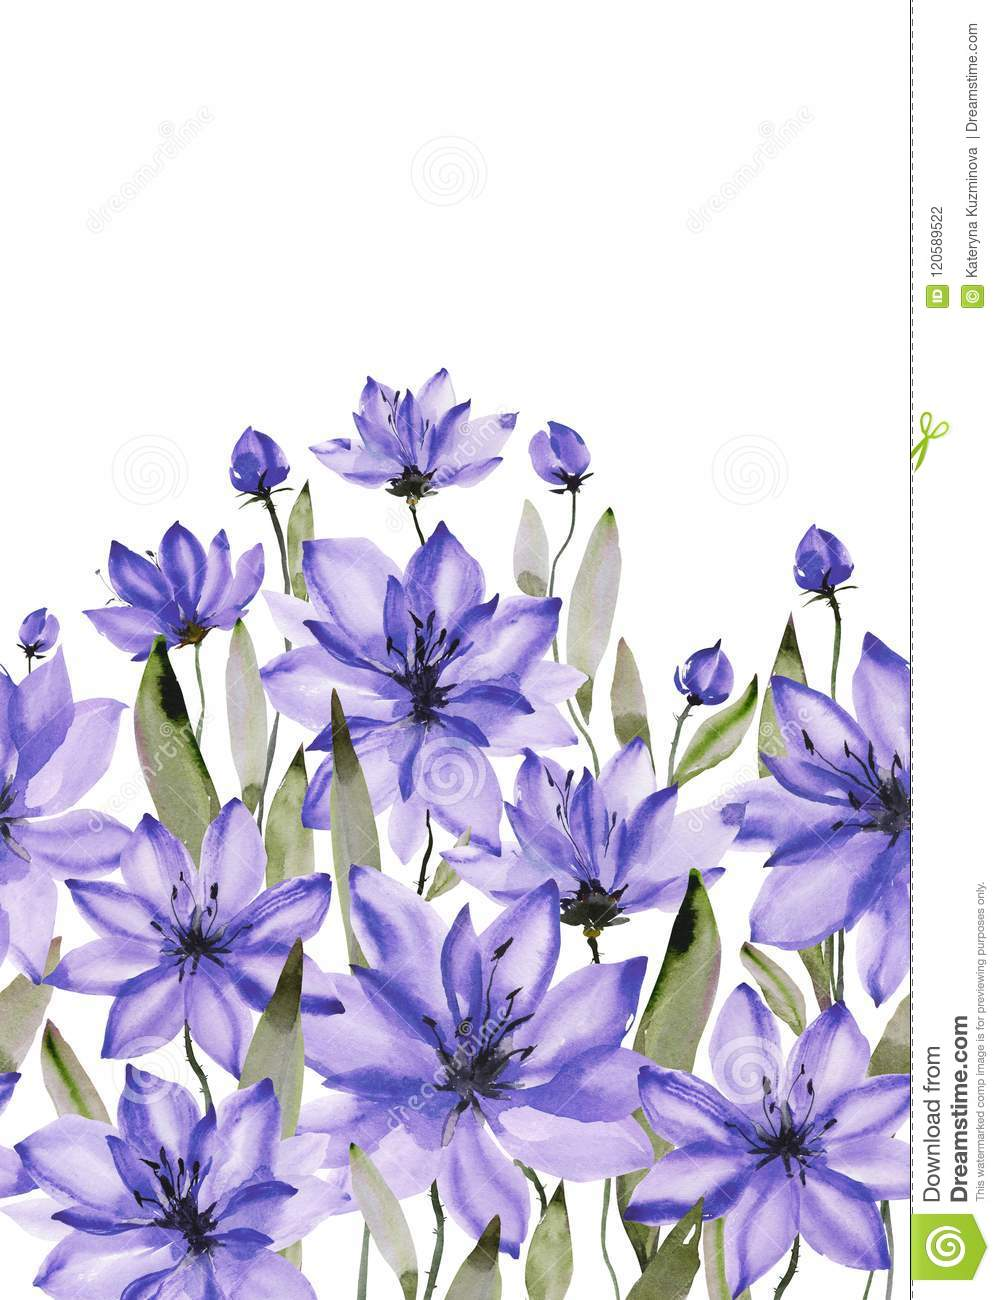 Beautiful purple flowers with green stems and leaves on white background. Seamless floral pattern. Watercolor painting.